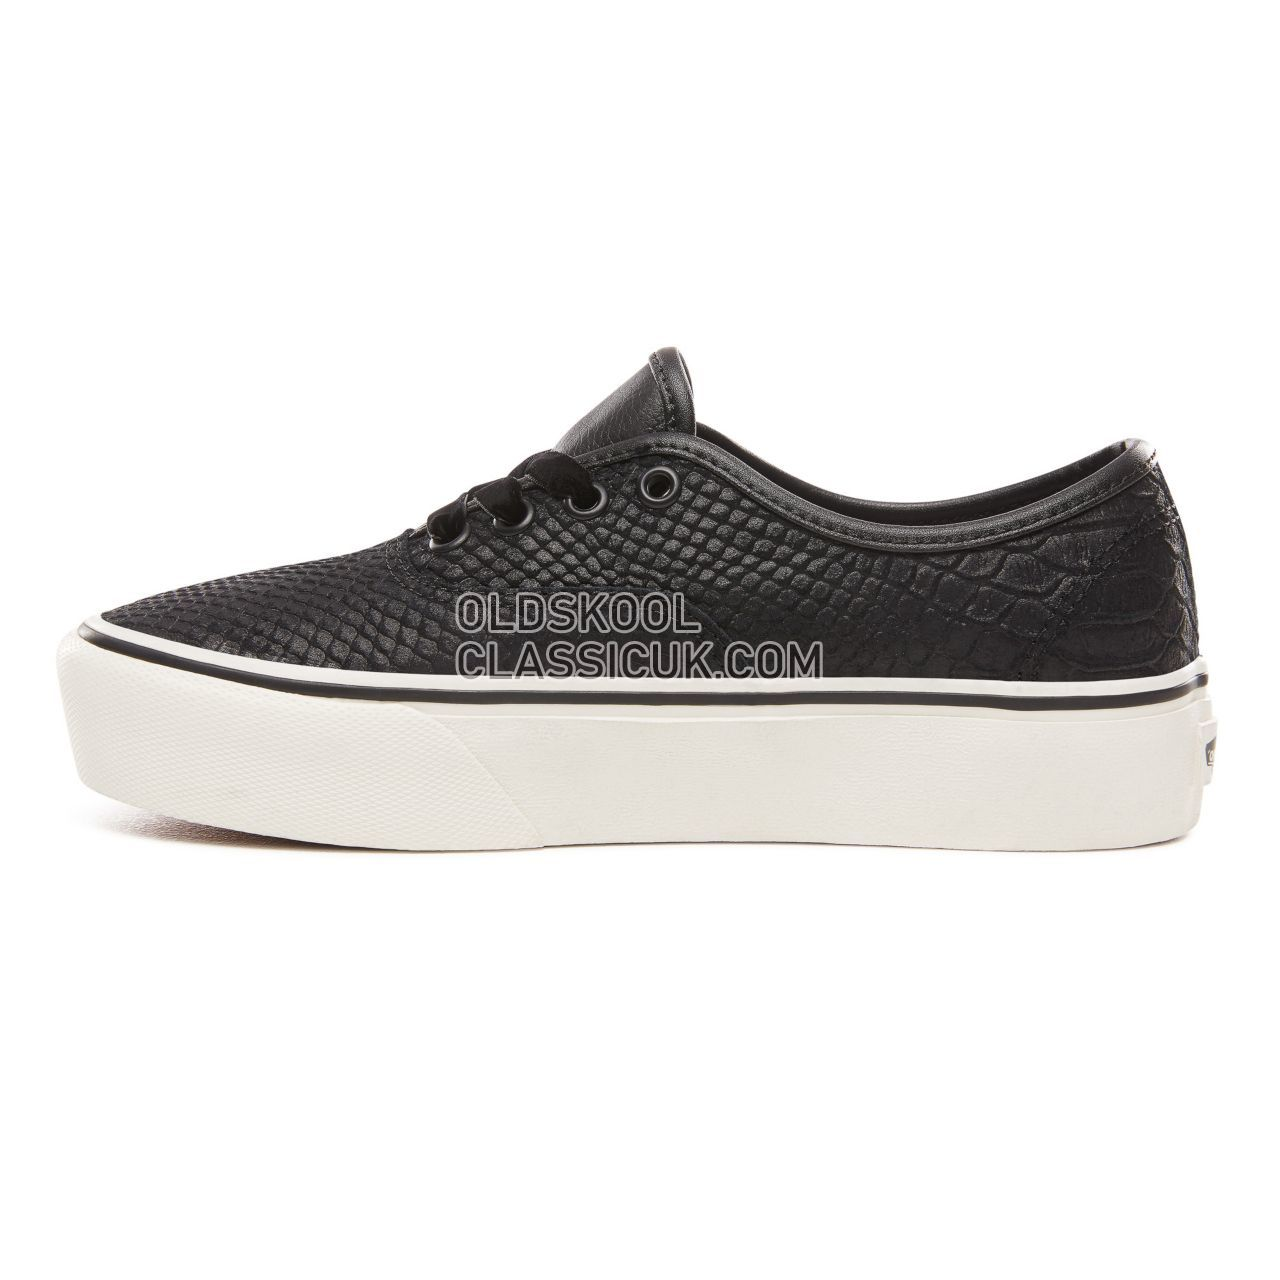 5d9ca7b3e4 ... Vans Leather Authentic Platform 2.0 Sneakers Womens (Leather) Snake  Black VN0A3AV8UQF Shoes ...